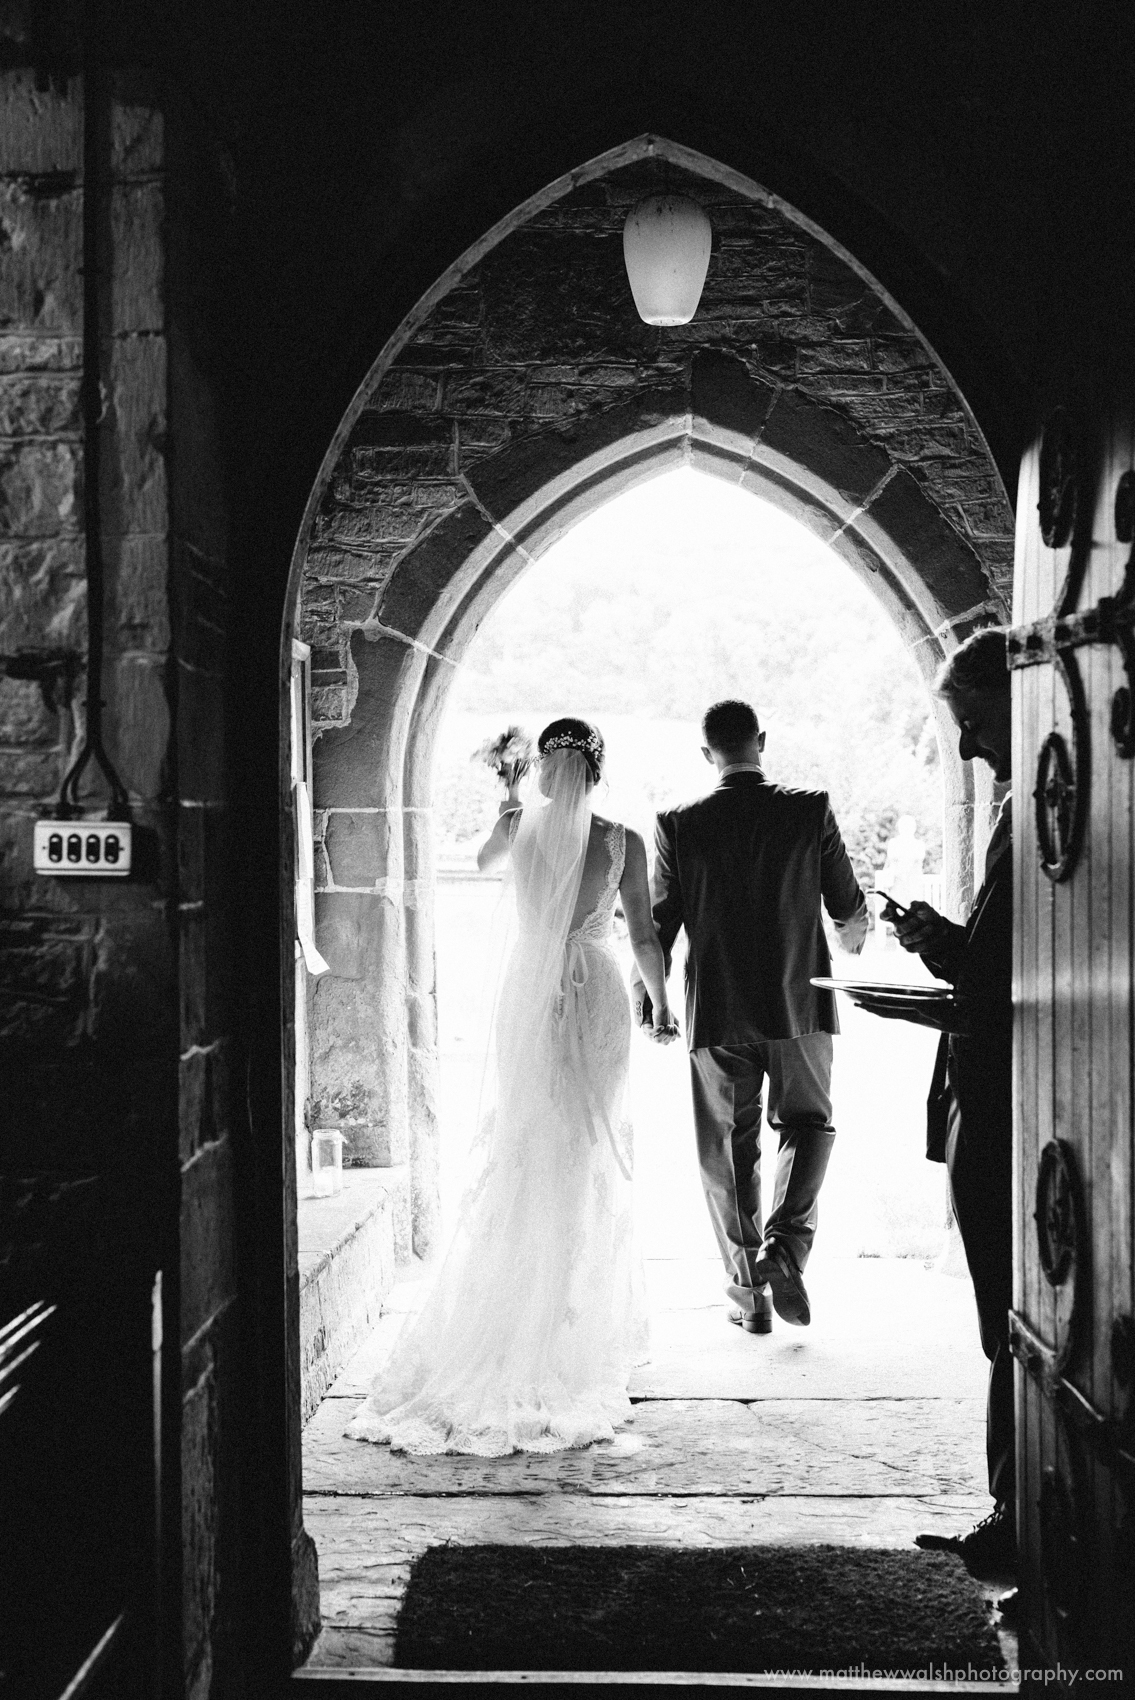 The cutest moment as the bride and groom set out from the church to embark on a new married adventure